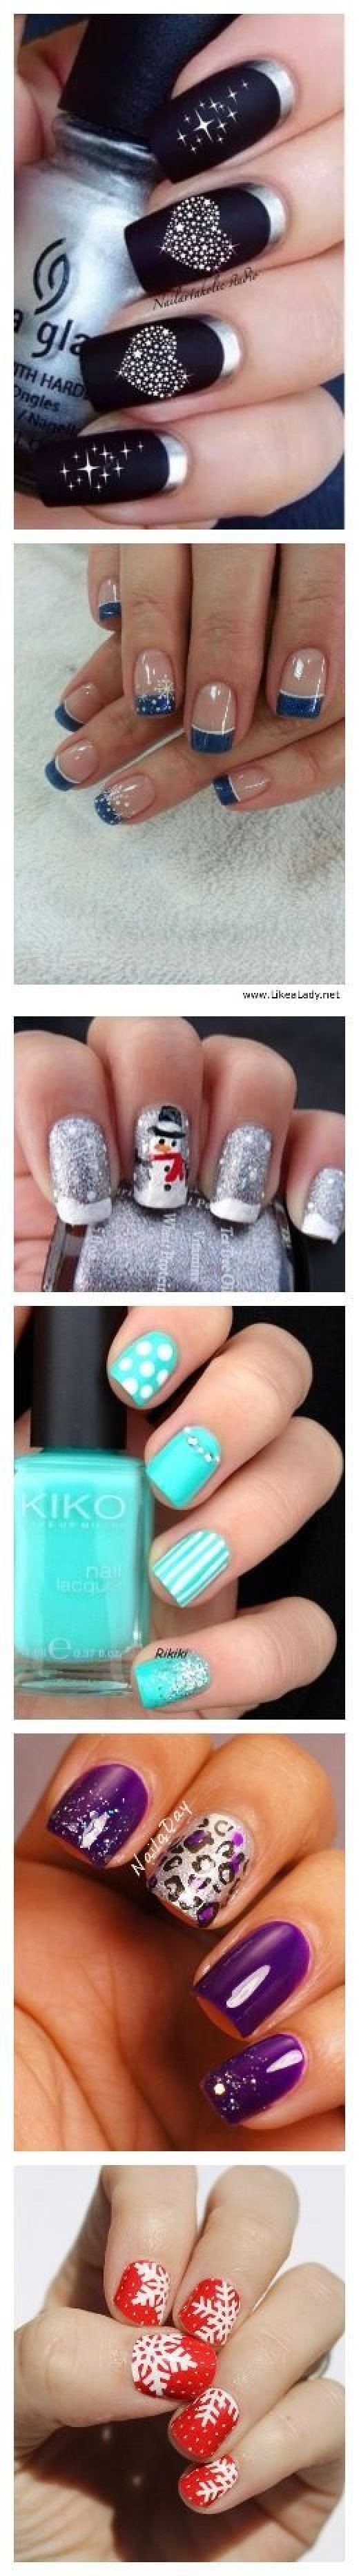 Black + Bling | Cute Valentines Day Nail Art Ideas for Teens